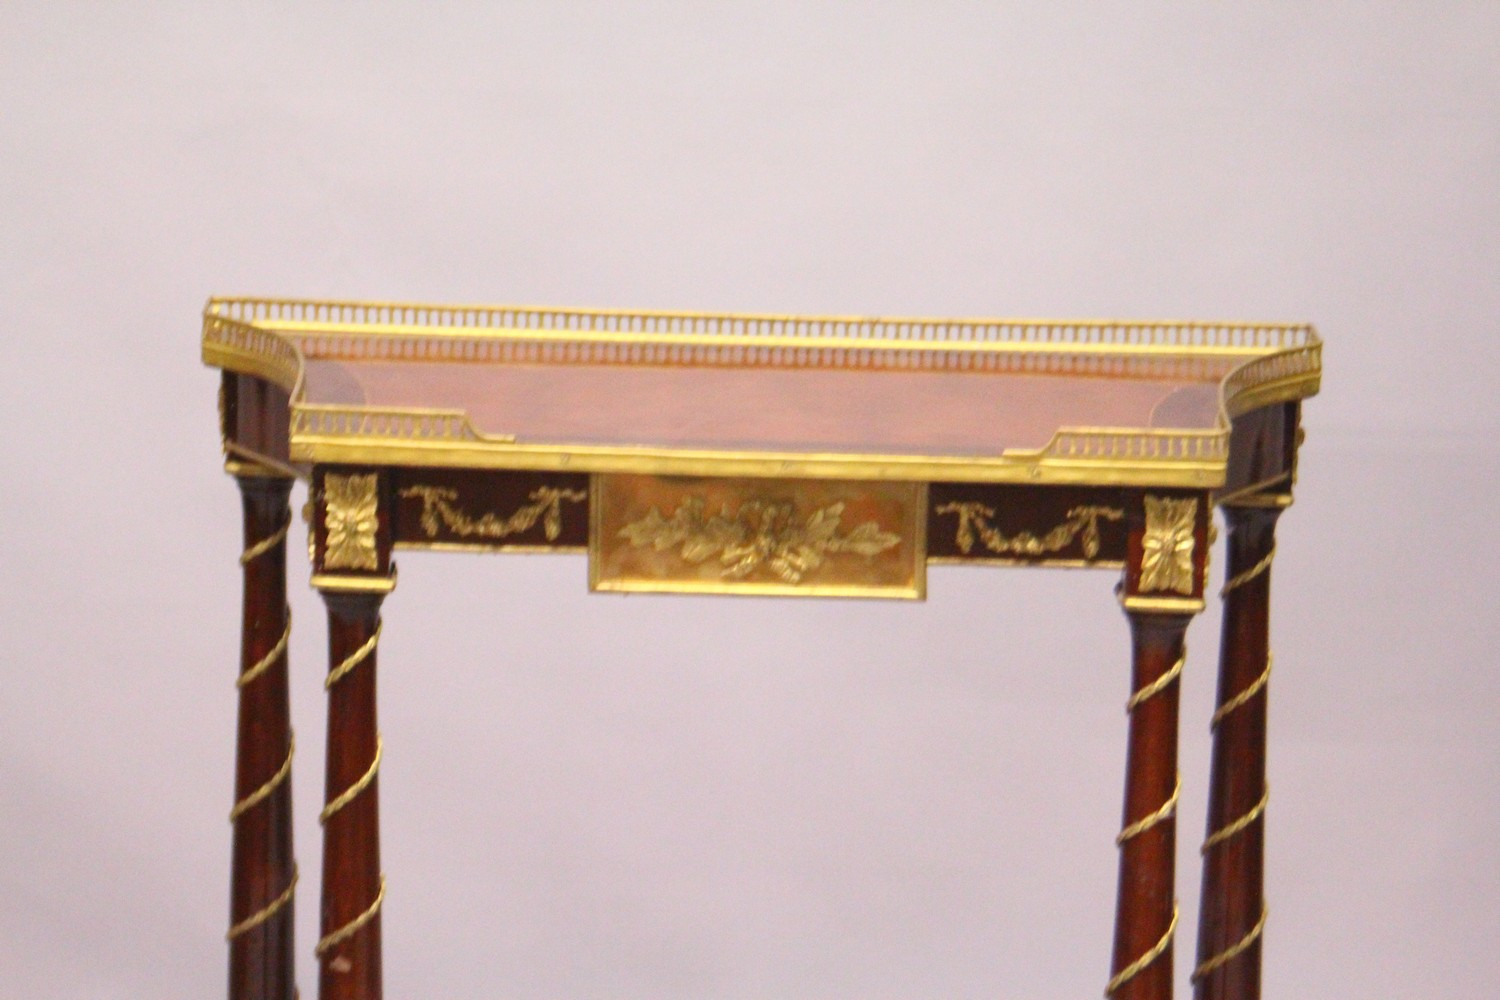 Lot 1016 - A FRENCH STYLE MAHOGANY AND ORMOLU TWO-TIER CONSOLE TABLE. 2ft 4ins wide x 2ft 9ins high x 1ft